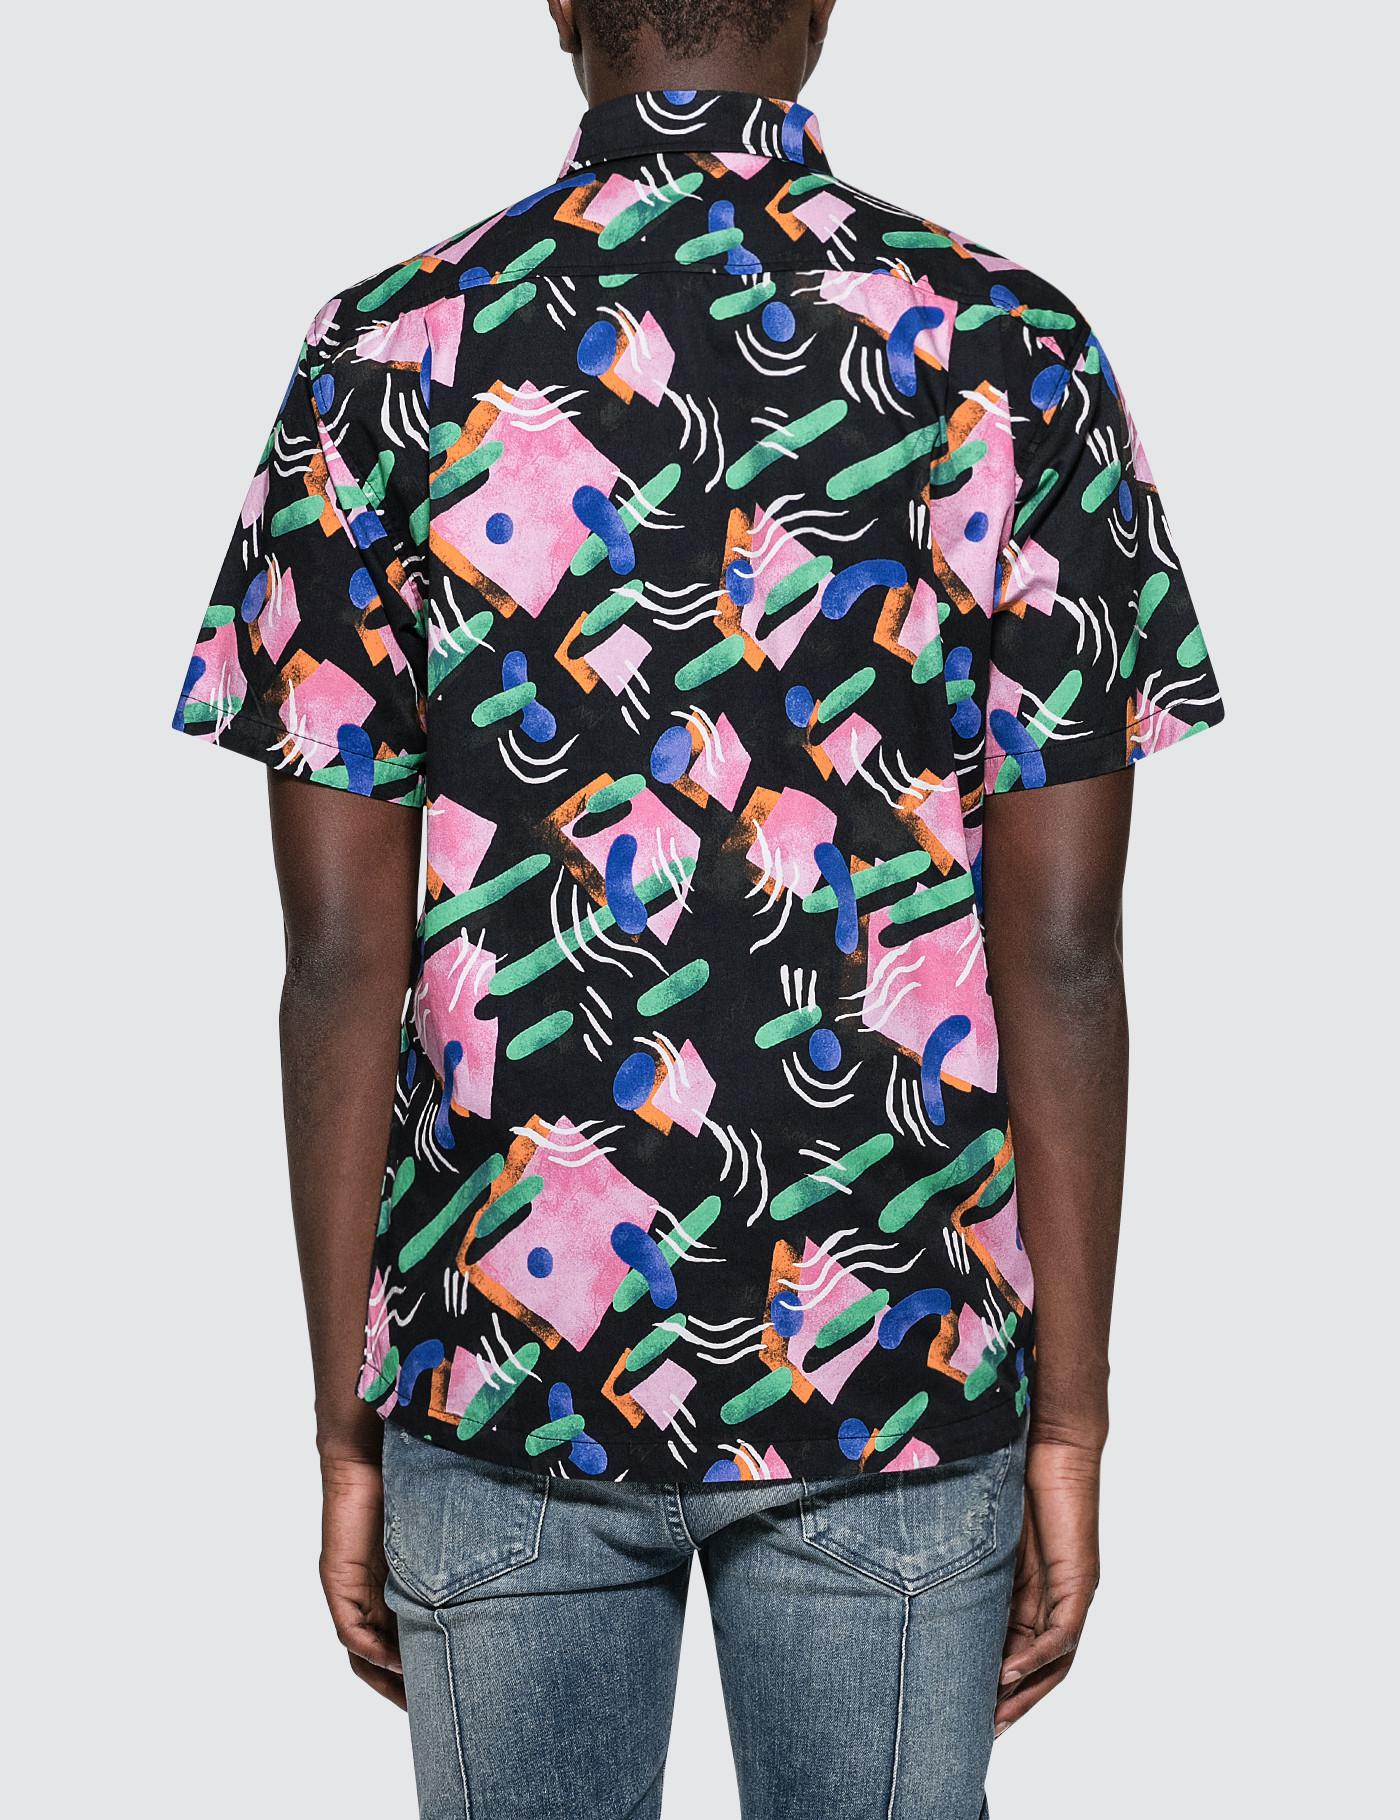 The Quiet Life Gibbler S/s Button Down Shirt in Black for Men